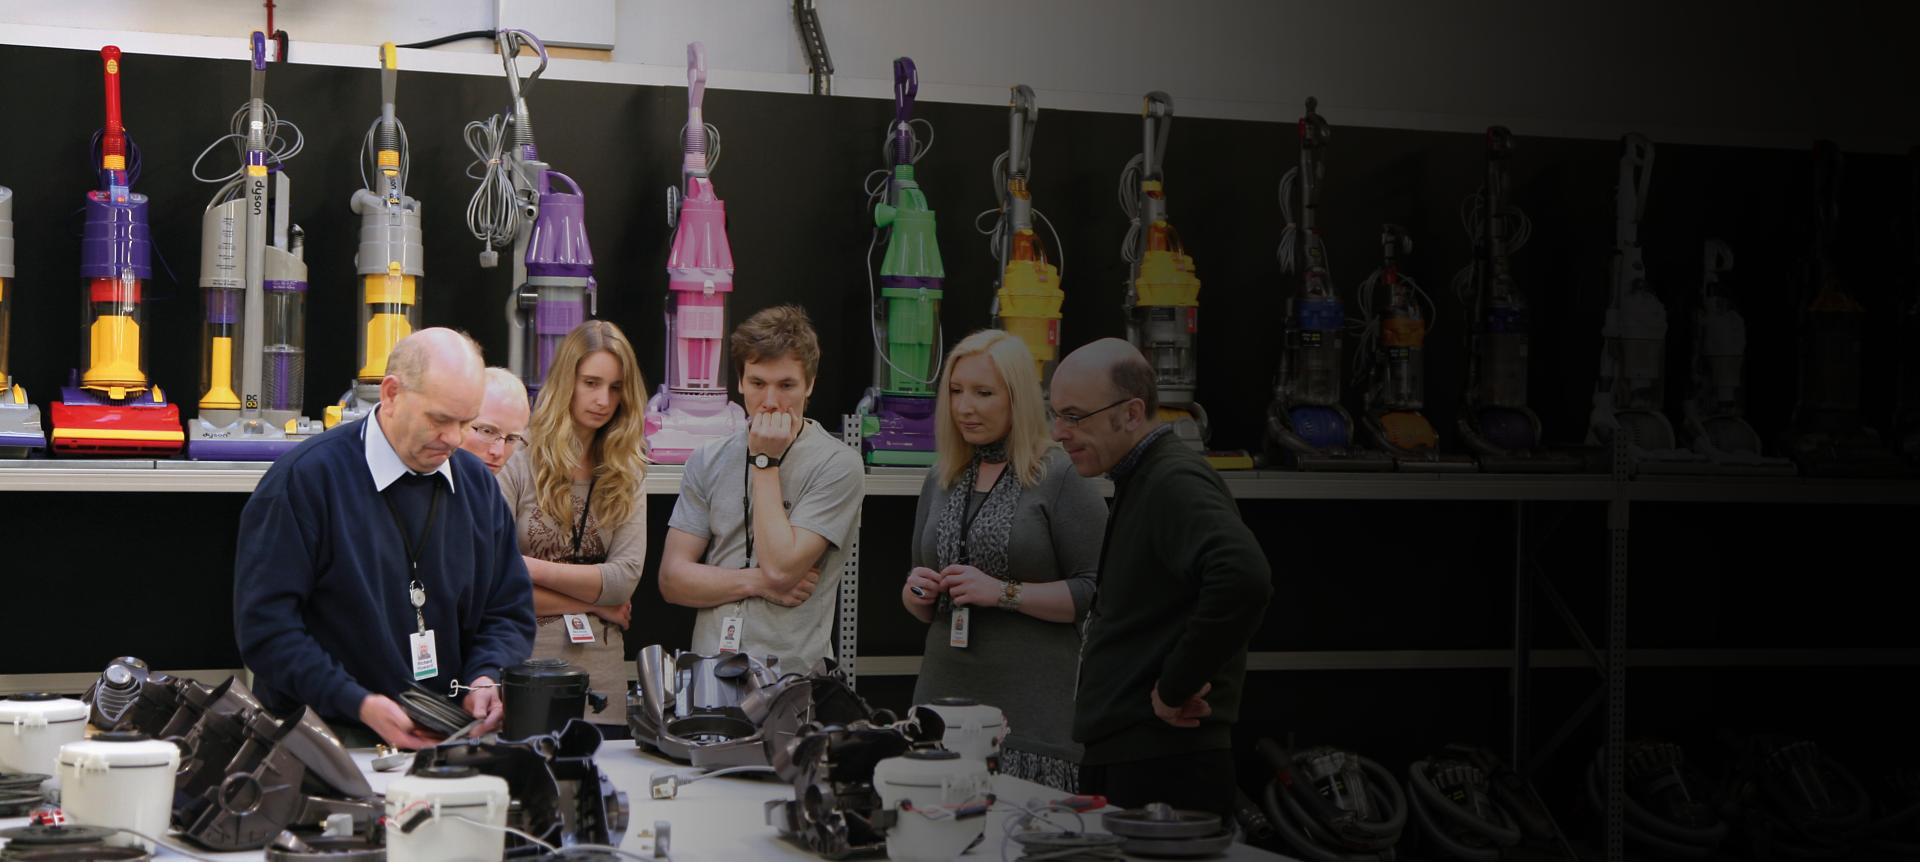 Dyson employees learning about our technology